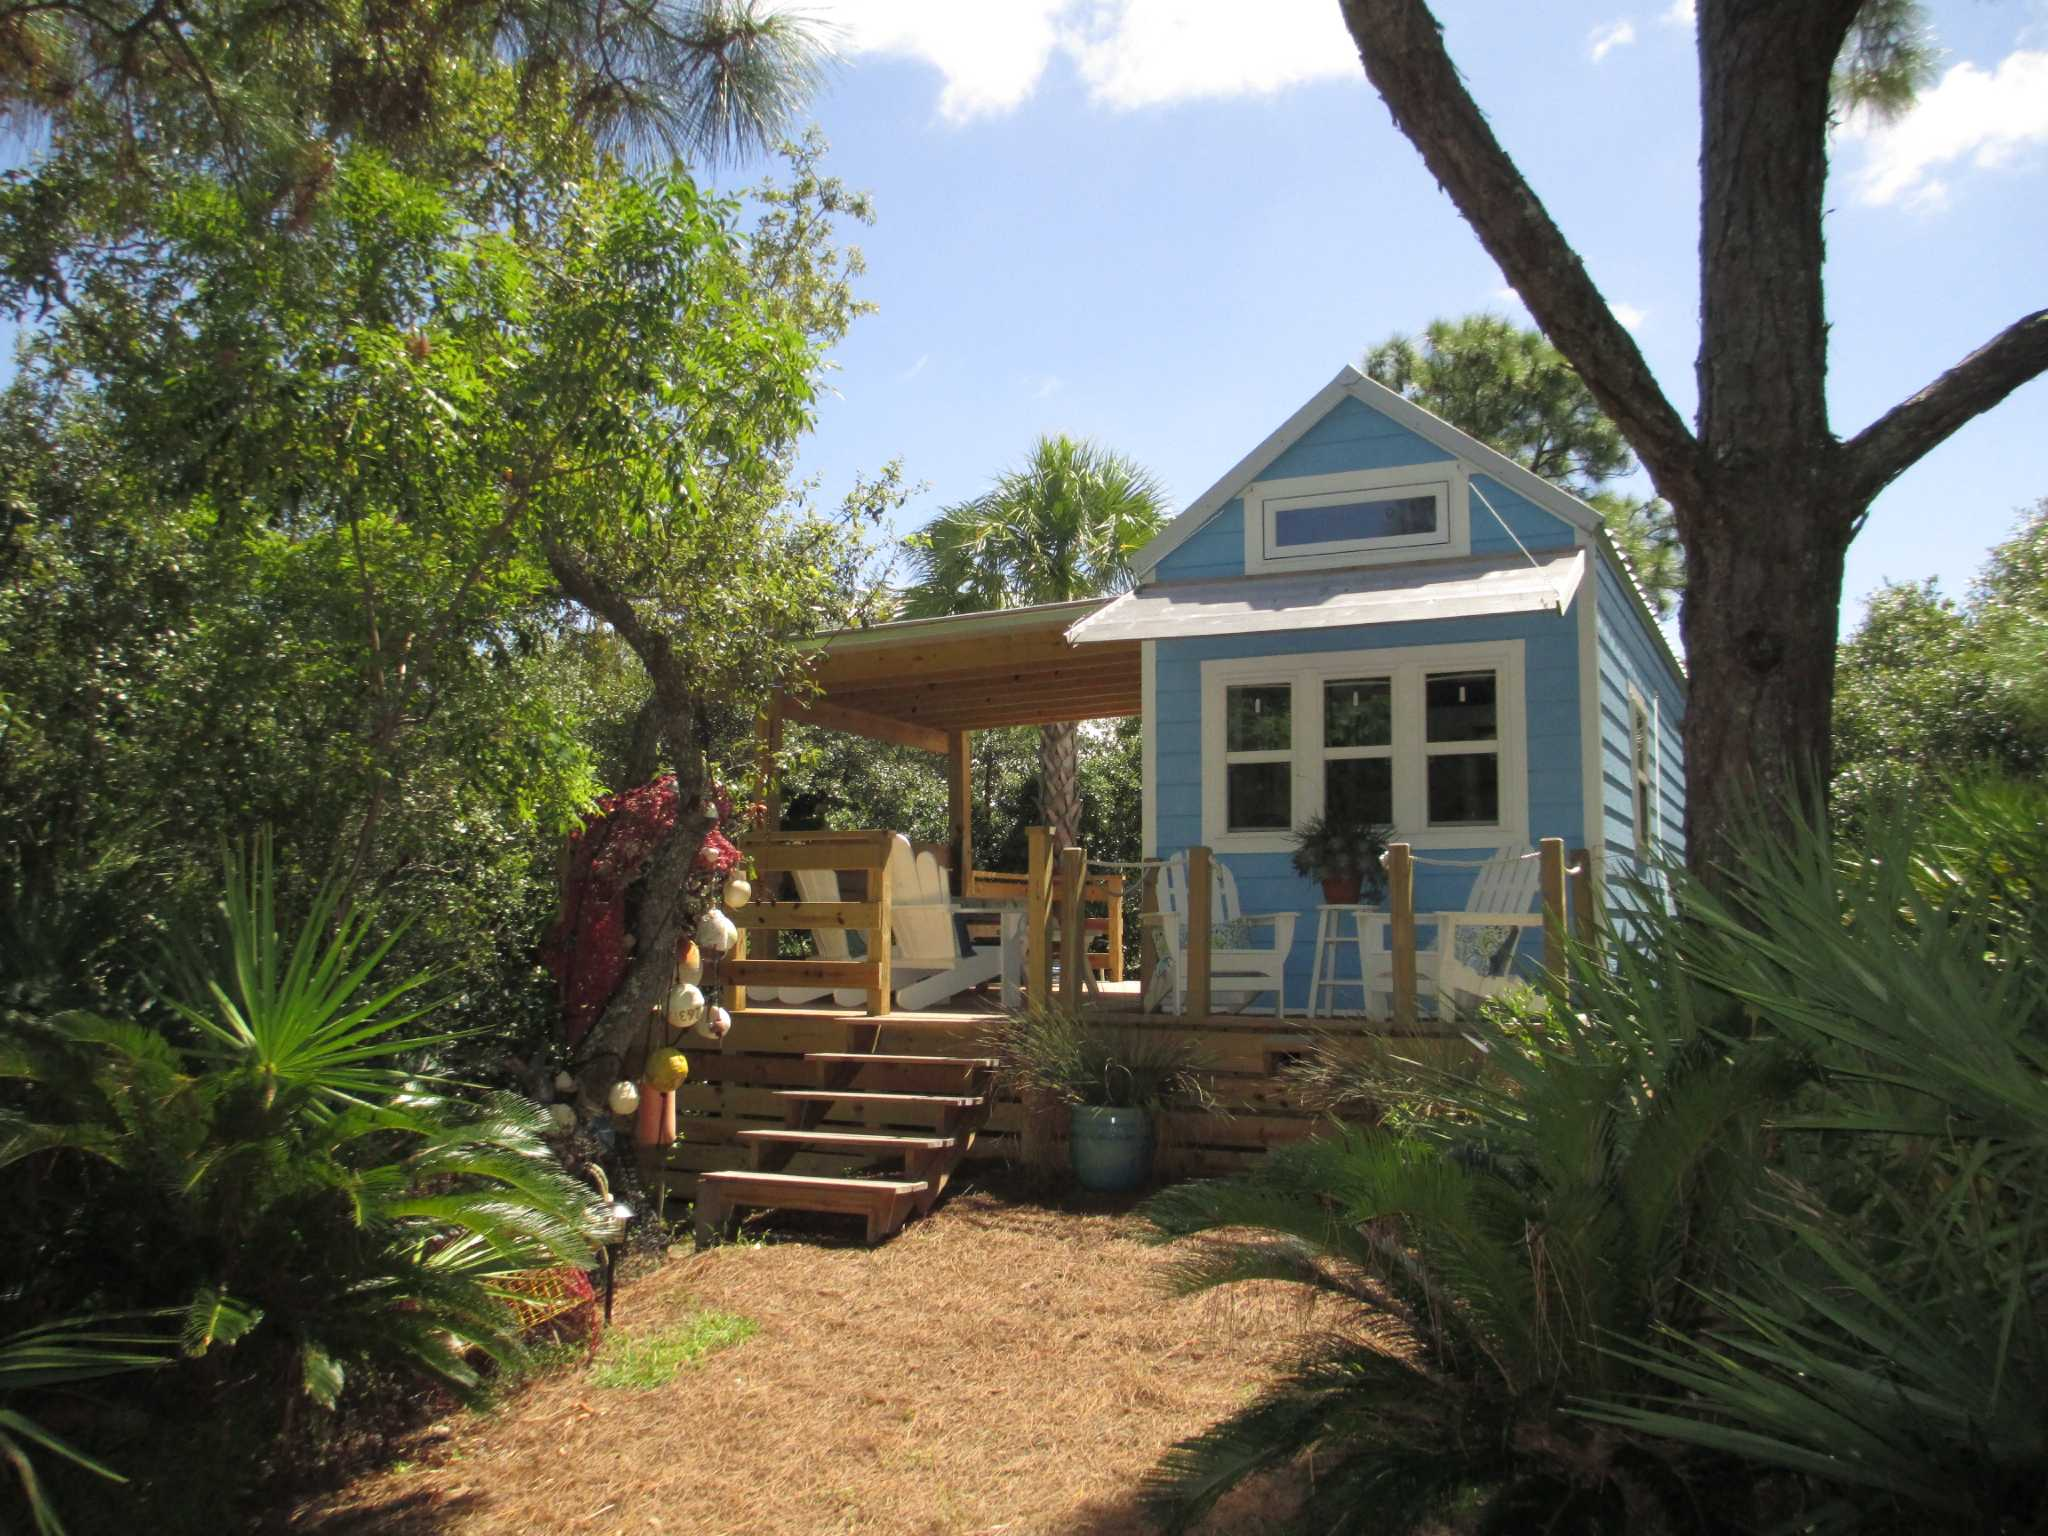 Tiny Houses A Big Trend In New Tv Shows Houstonchronicle Com